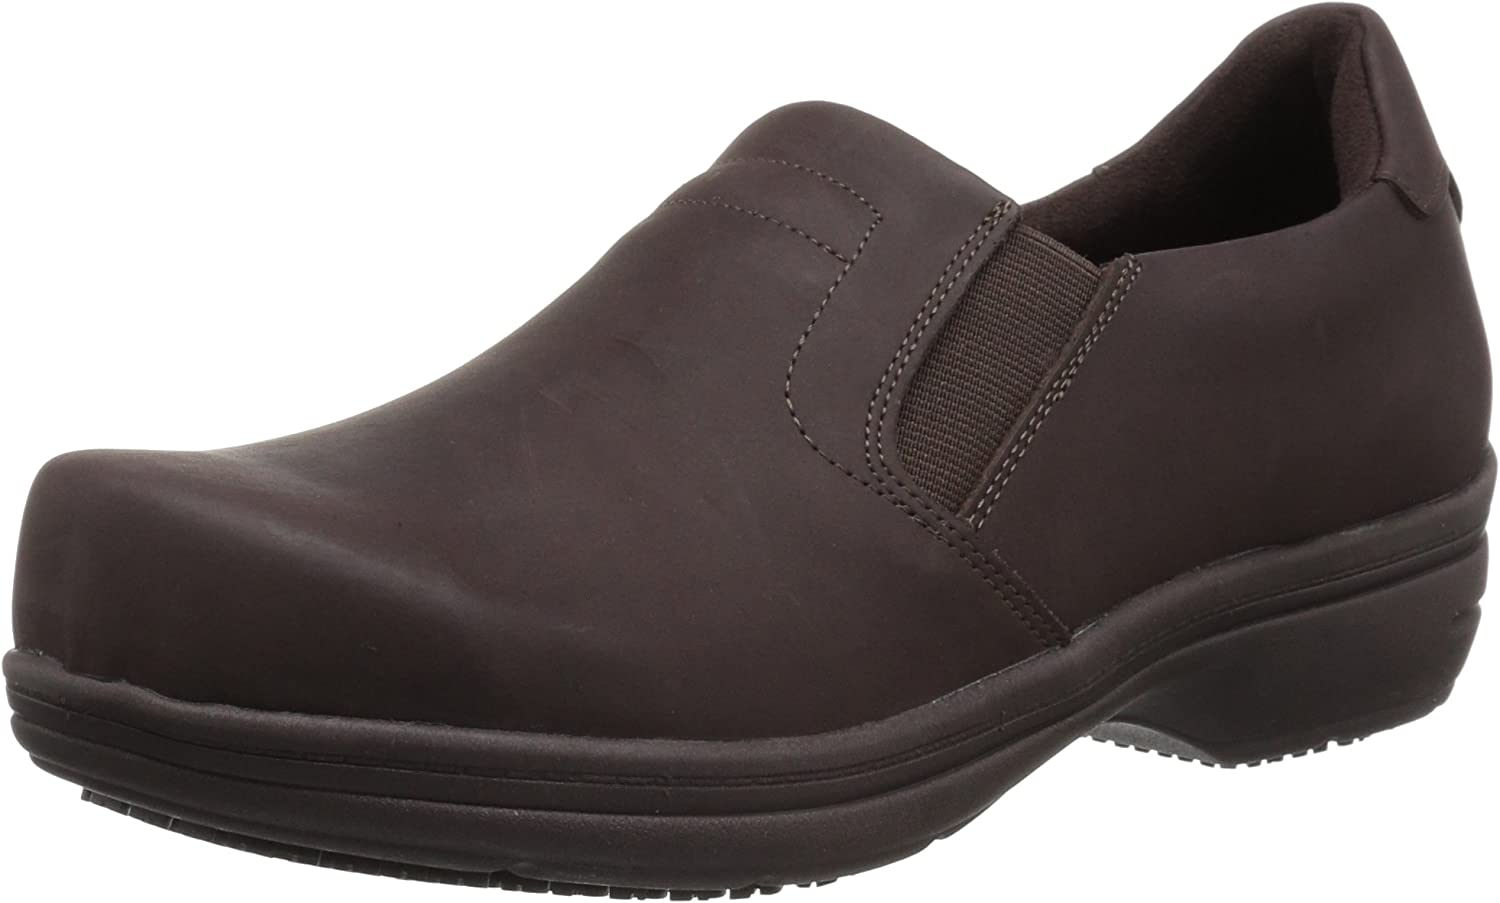 Easy Works Women's Bind Health Care Professional shoes